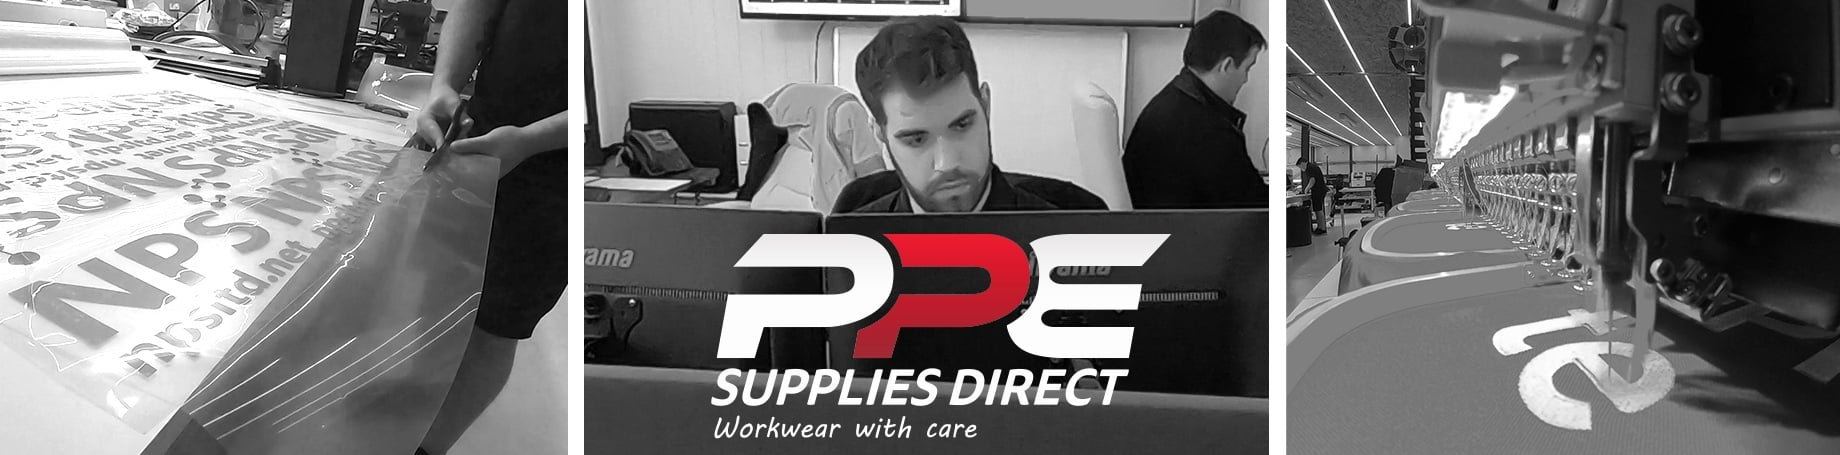 PPE Supplies Direct - About Us